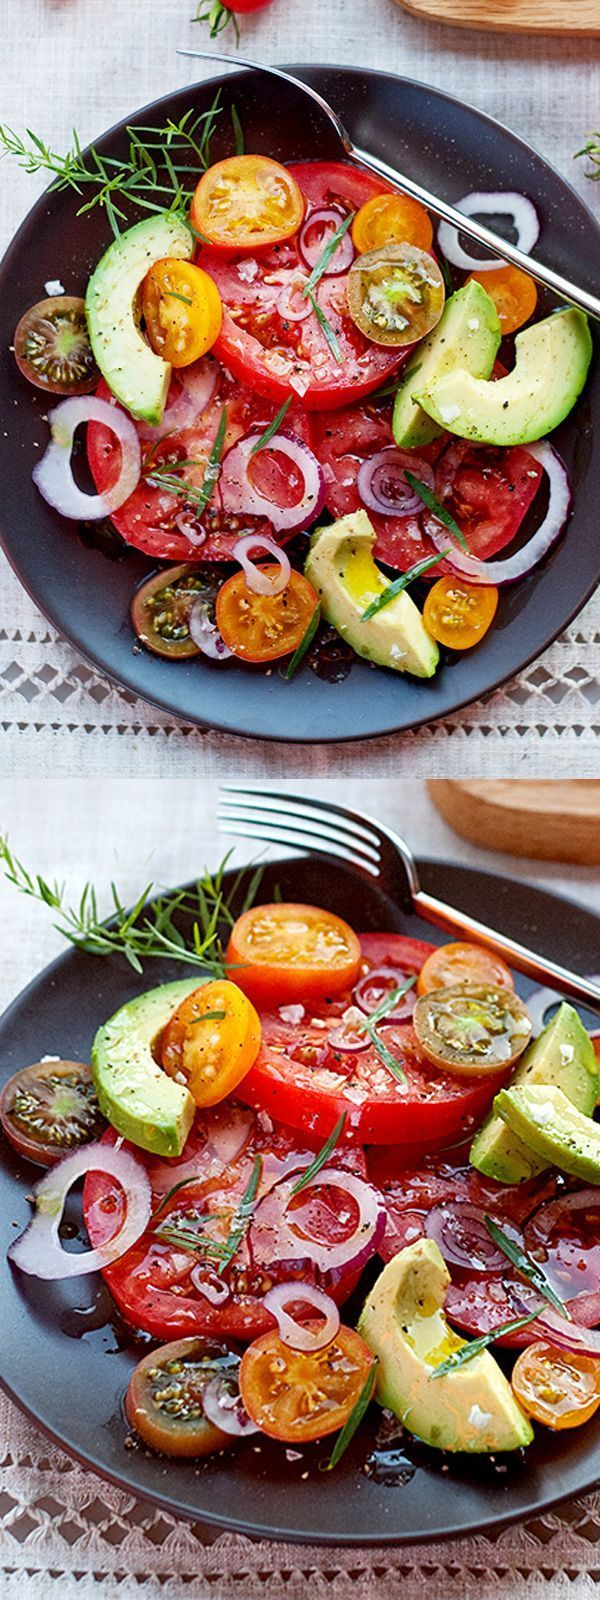 This simple #salad is the perfect solution for garden fresh #tomatoes and creamy #avocado | #recipe on foodiecrush.com